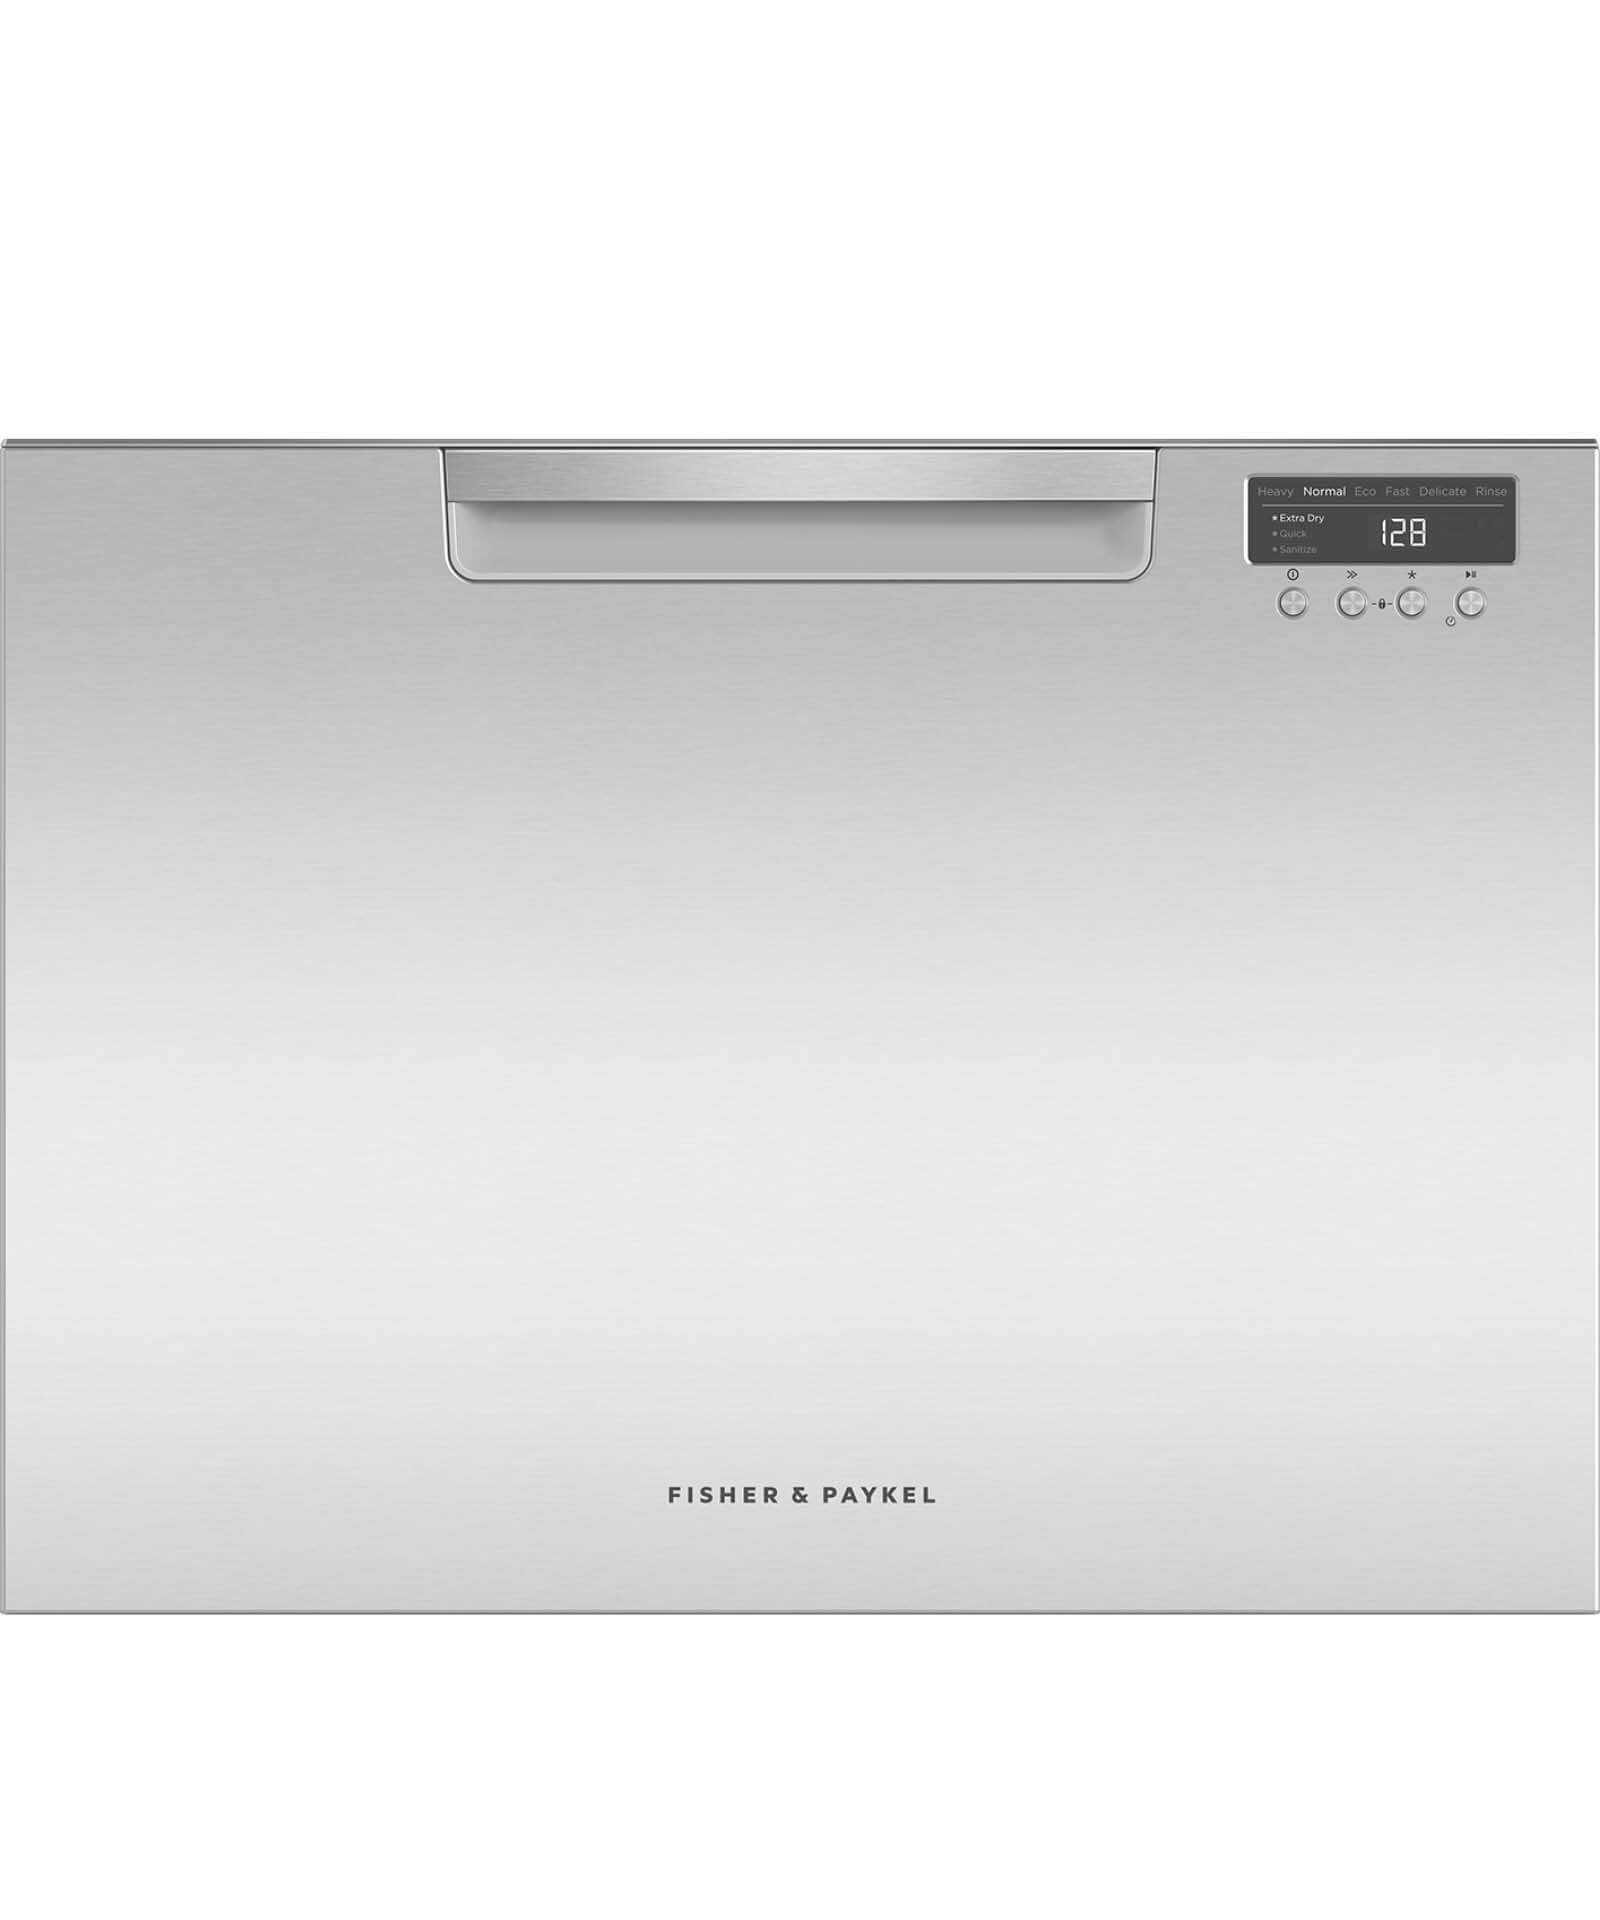 Single DishDrawer™, 7 Place Settings, Water Softener